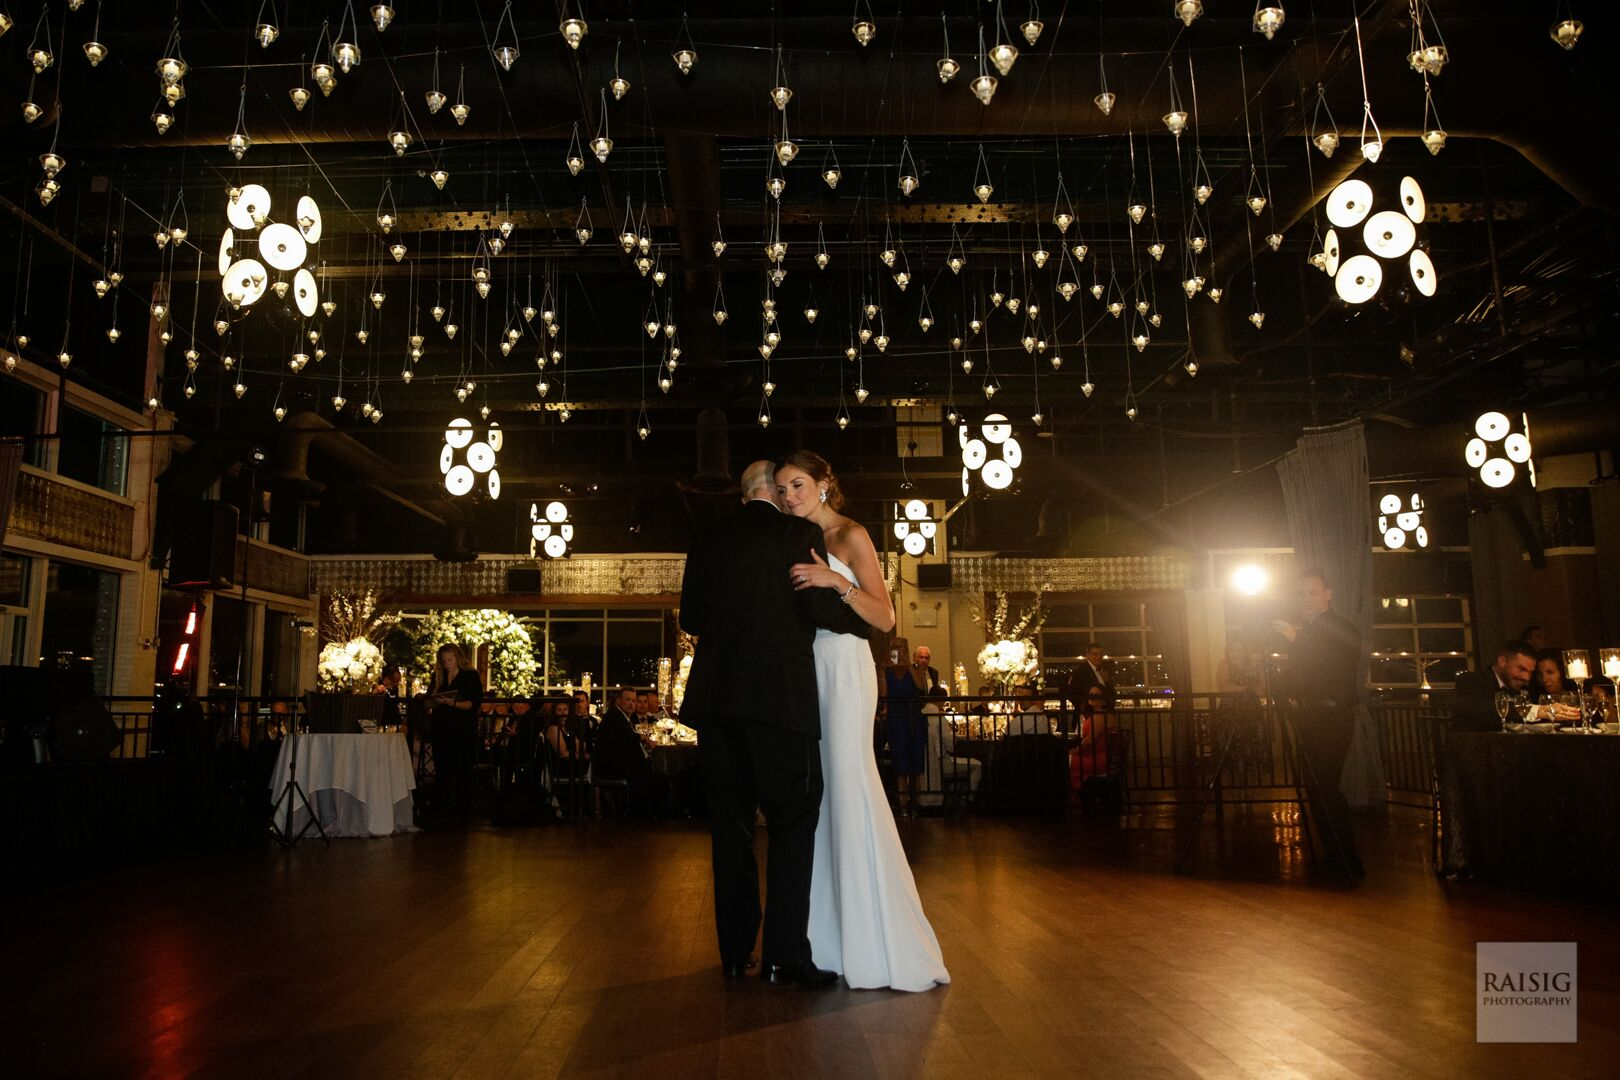 Bride and groom at their first dance